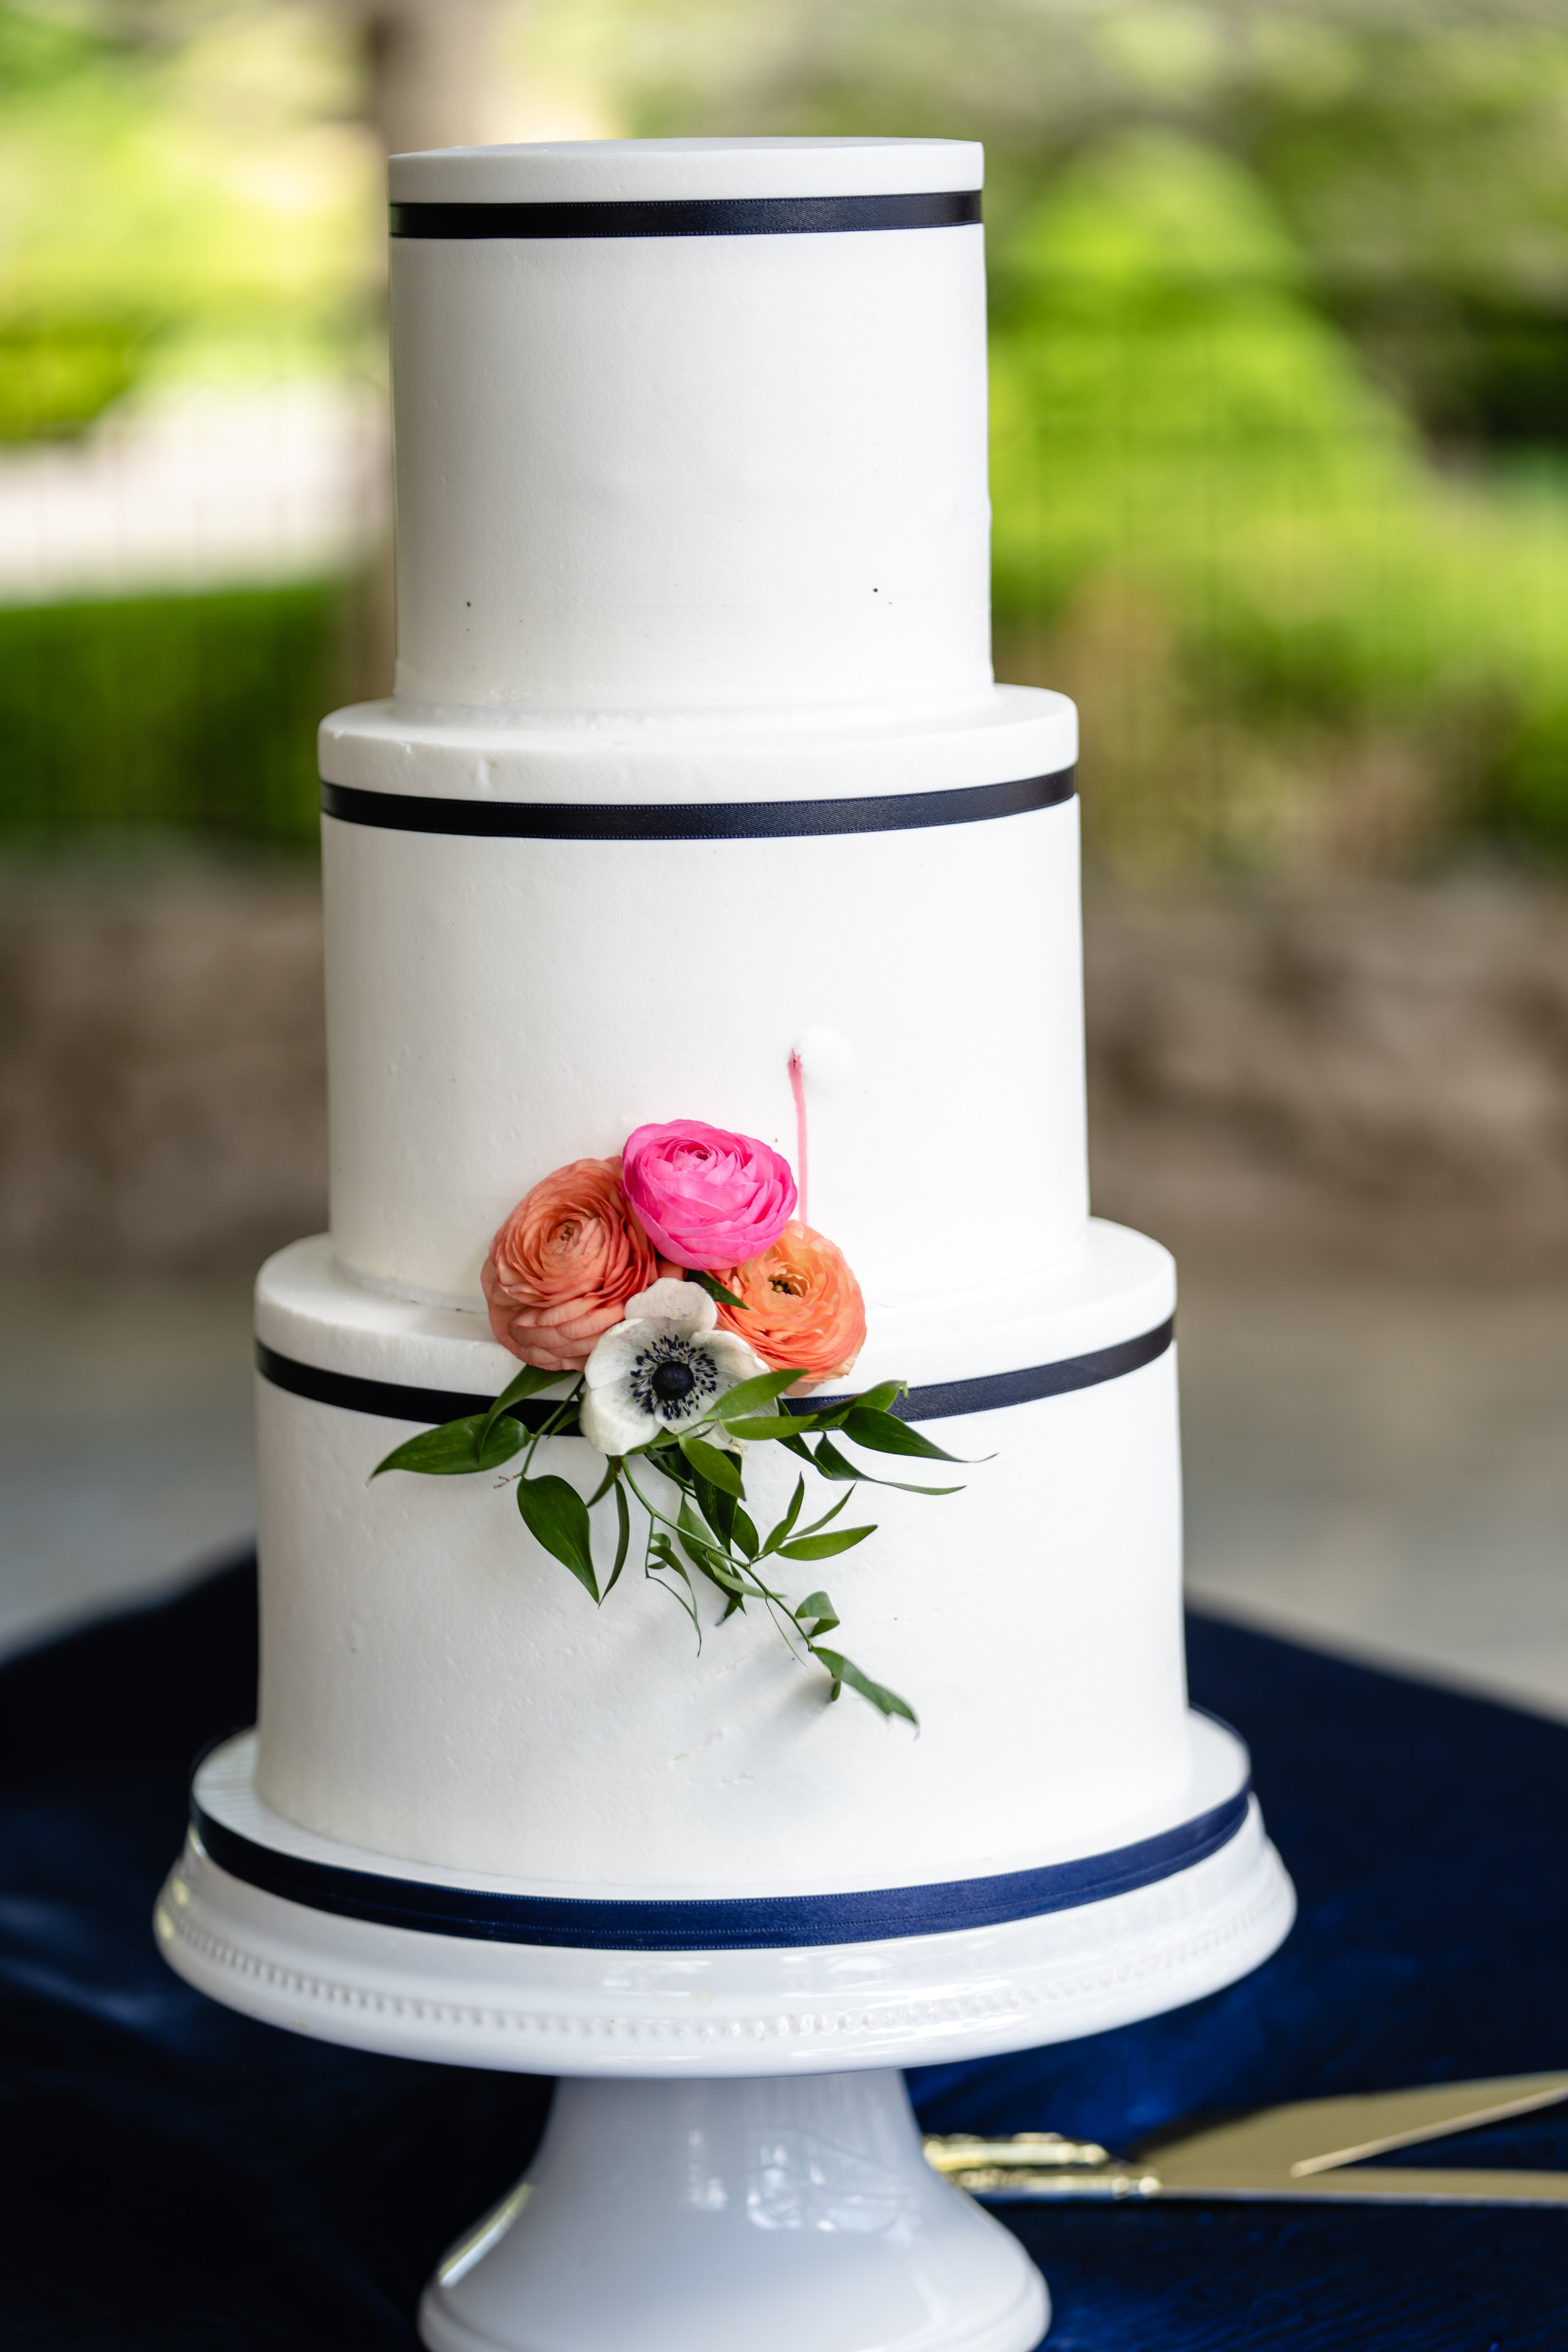 Charity Fent Cake Design in Springfield, Missouri designed this perfect cake for the non-traditional garden party wedding for vintage loving couple, Kennedy and Zach at Haseltine Estate and planned by Unions With Celia.